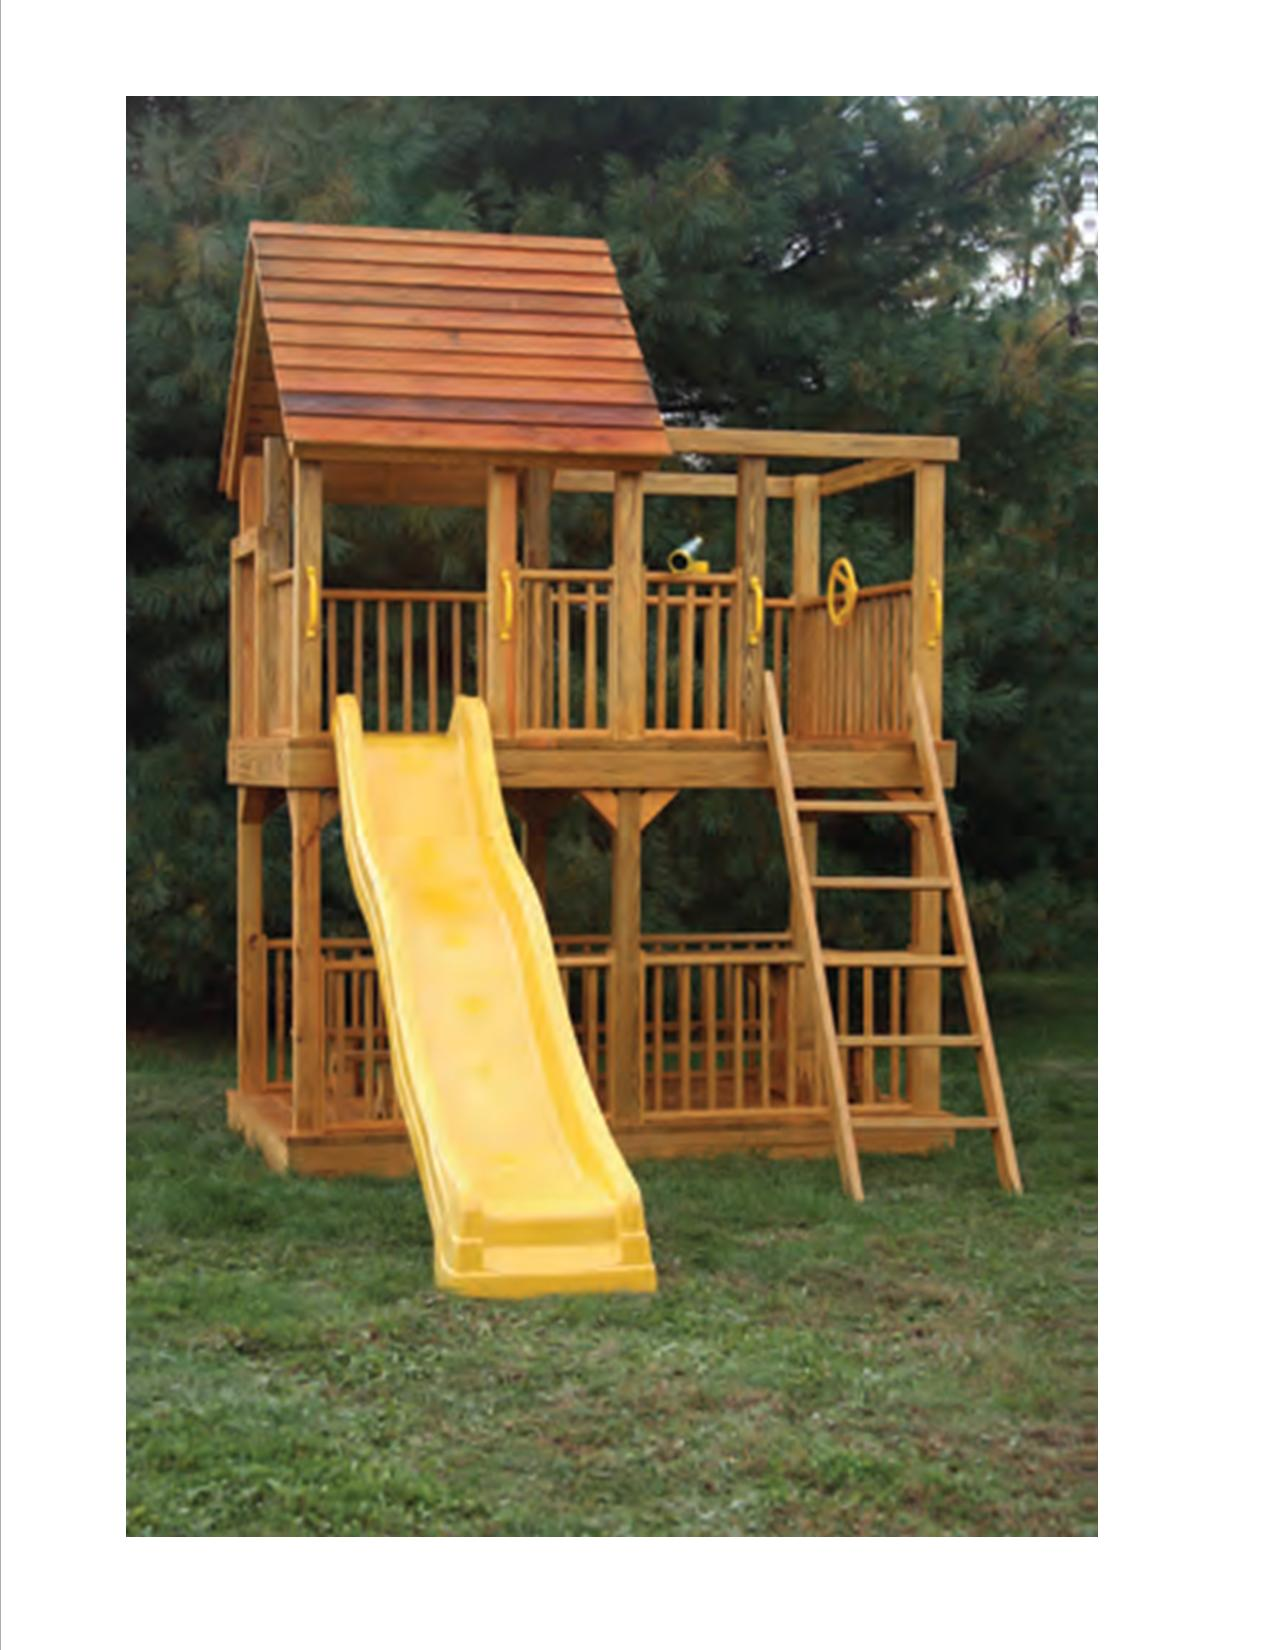 a large 5u0027 x 8u0027 tower with 5u0027 floor height includes picnic table with benches ladder slide safety handles steering wheel and telescope